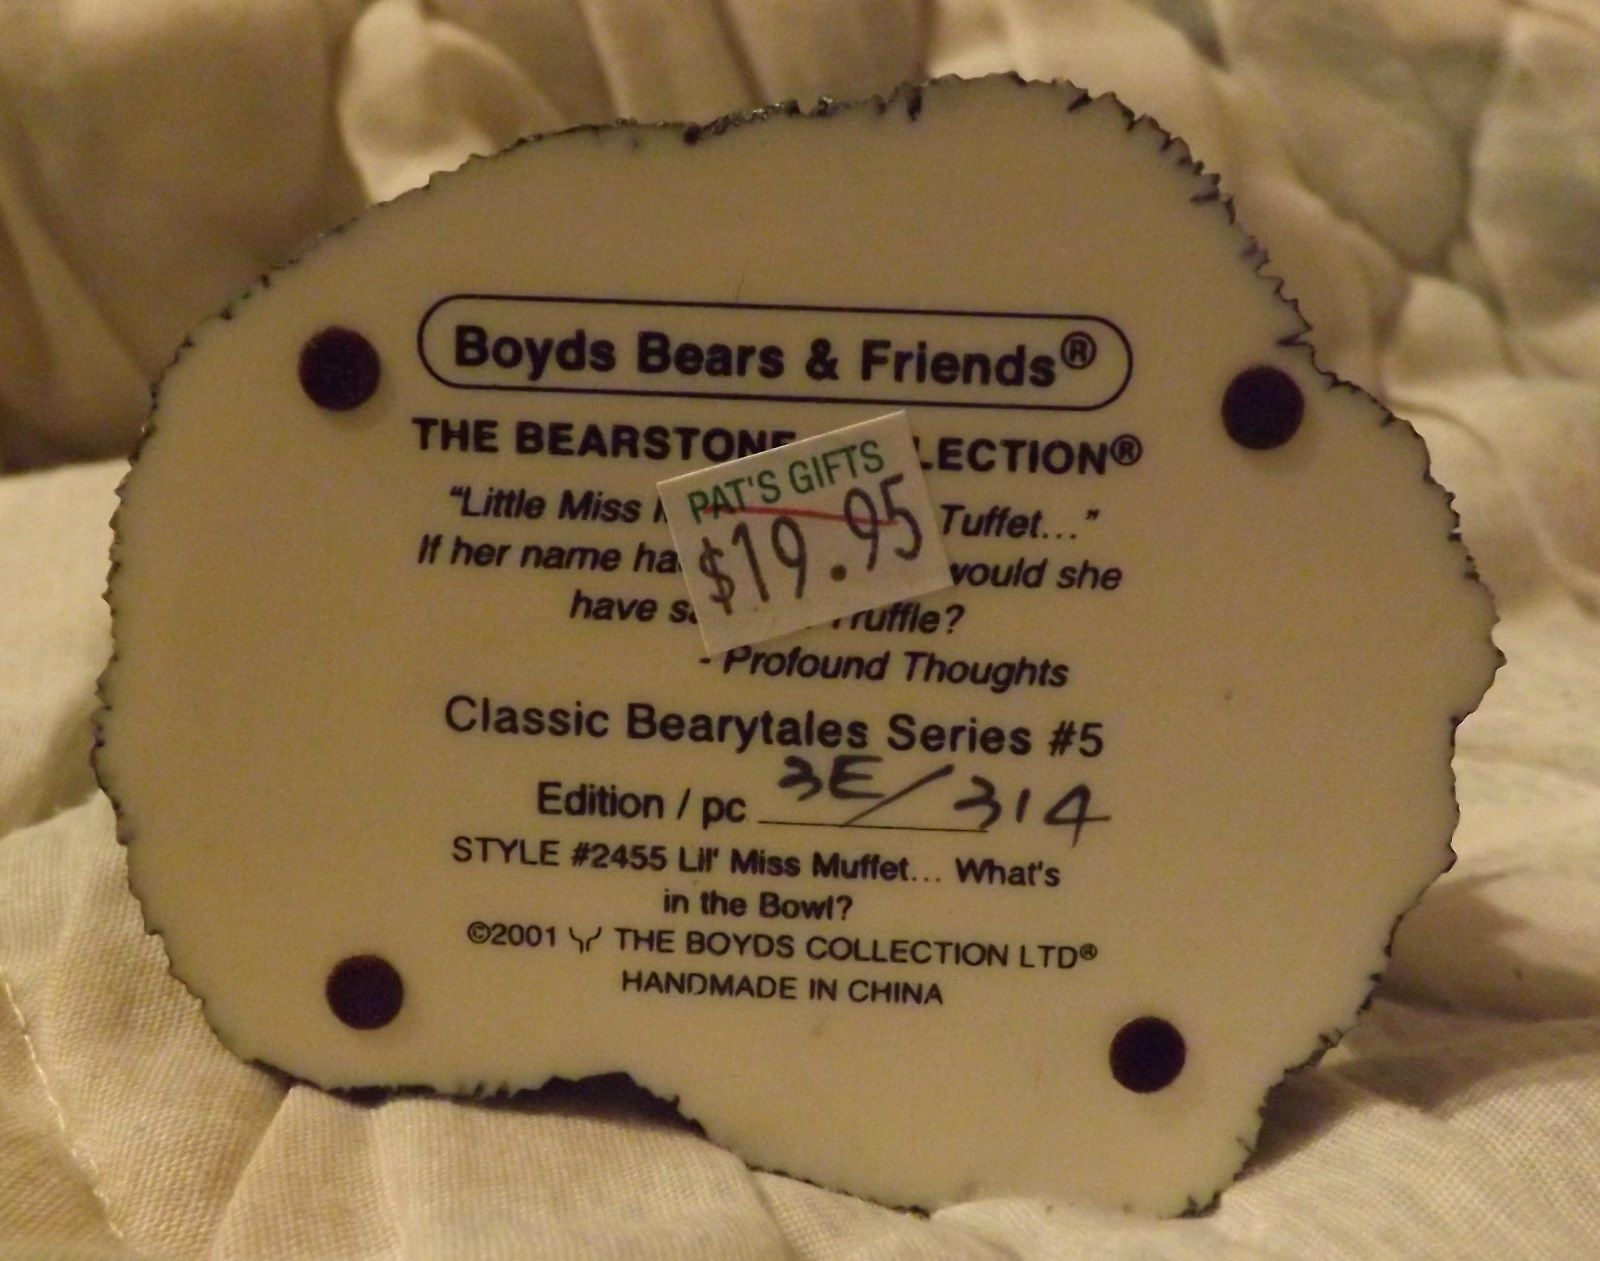 Boyds Bear Resin Classic Bearytales Series Lil' Miss Muffet...What's in the Bowl image 2